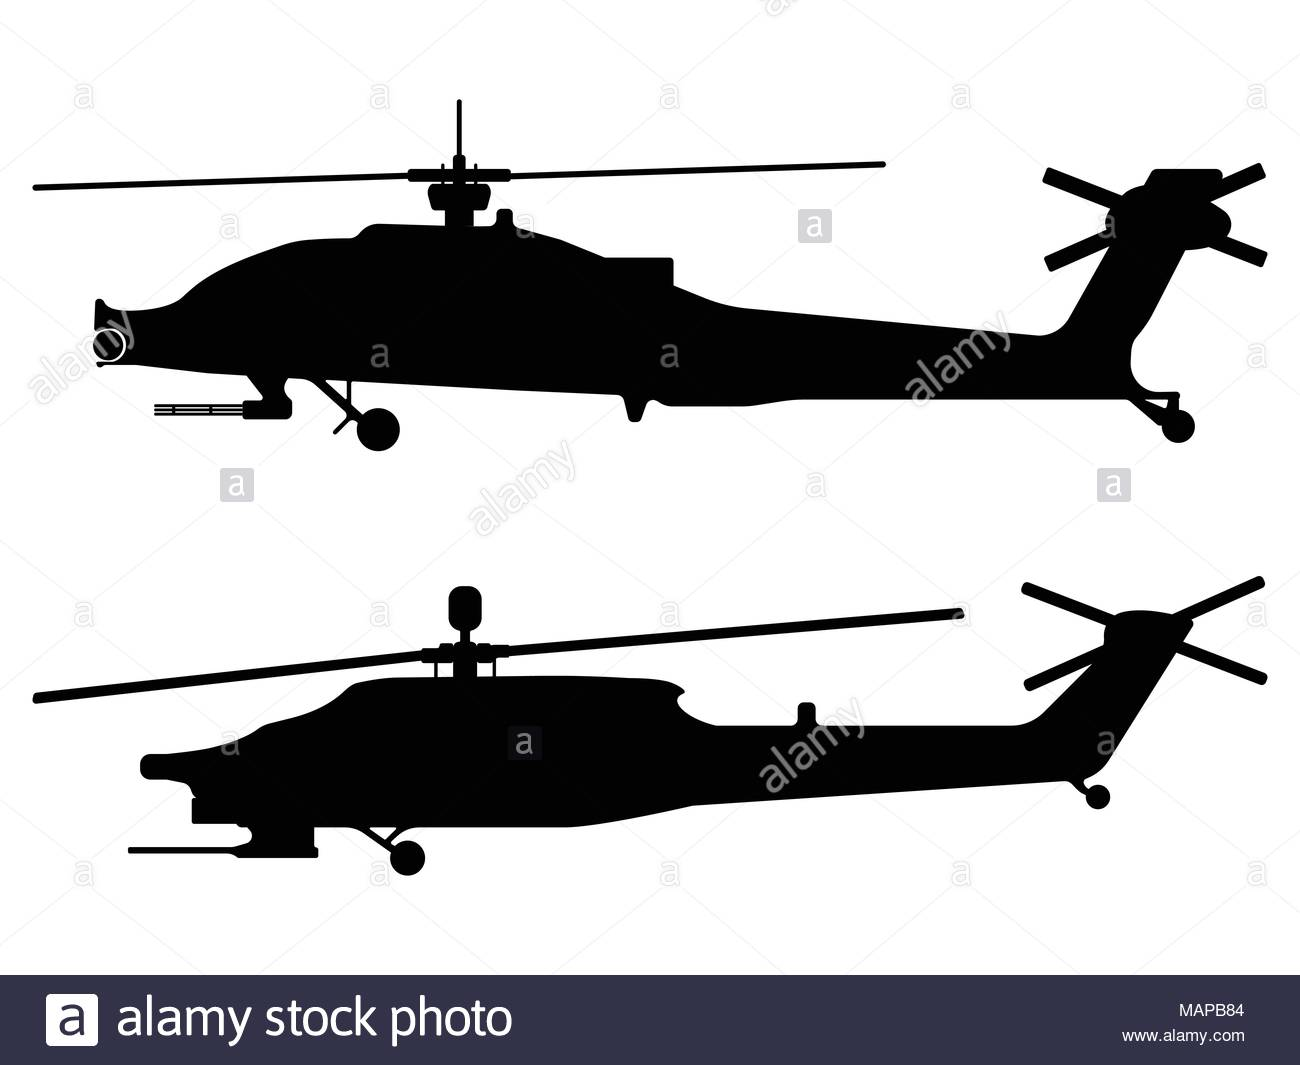 1300x1065 Helicopter Silhouette Stock Photos Amp Helicopter Silhouette Stock